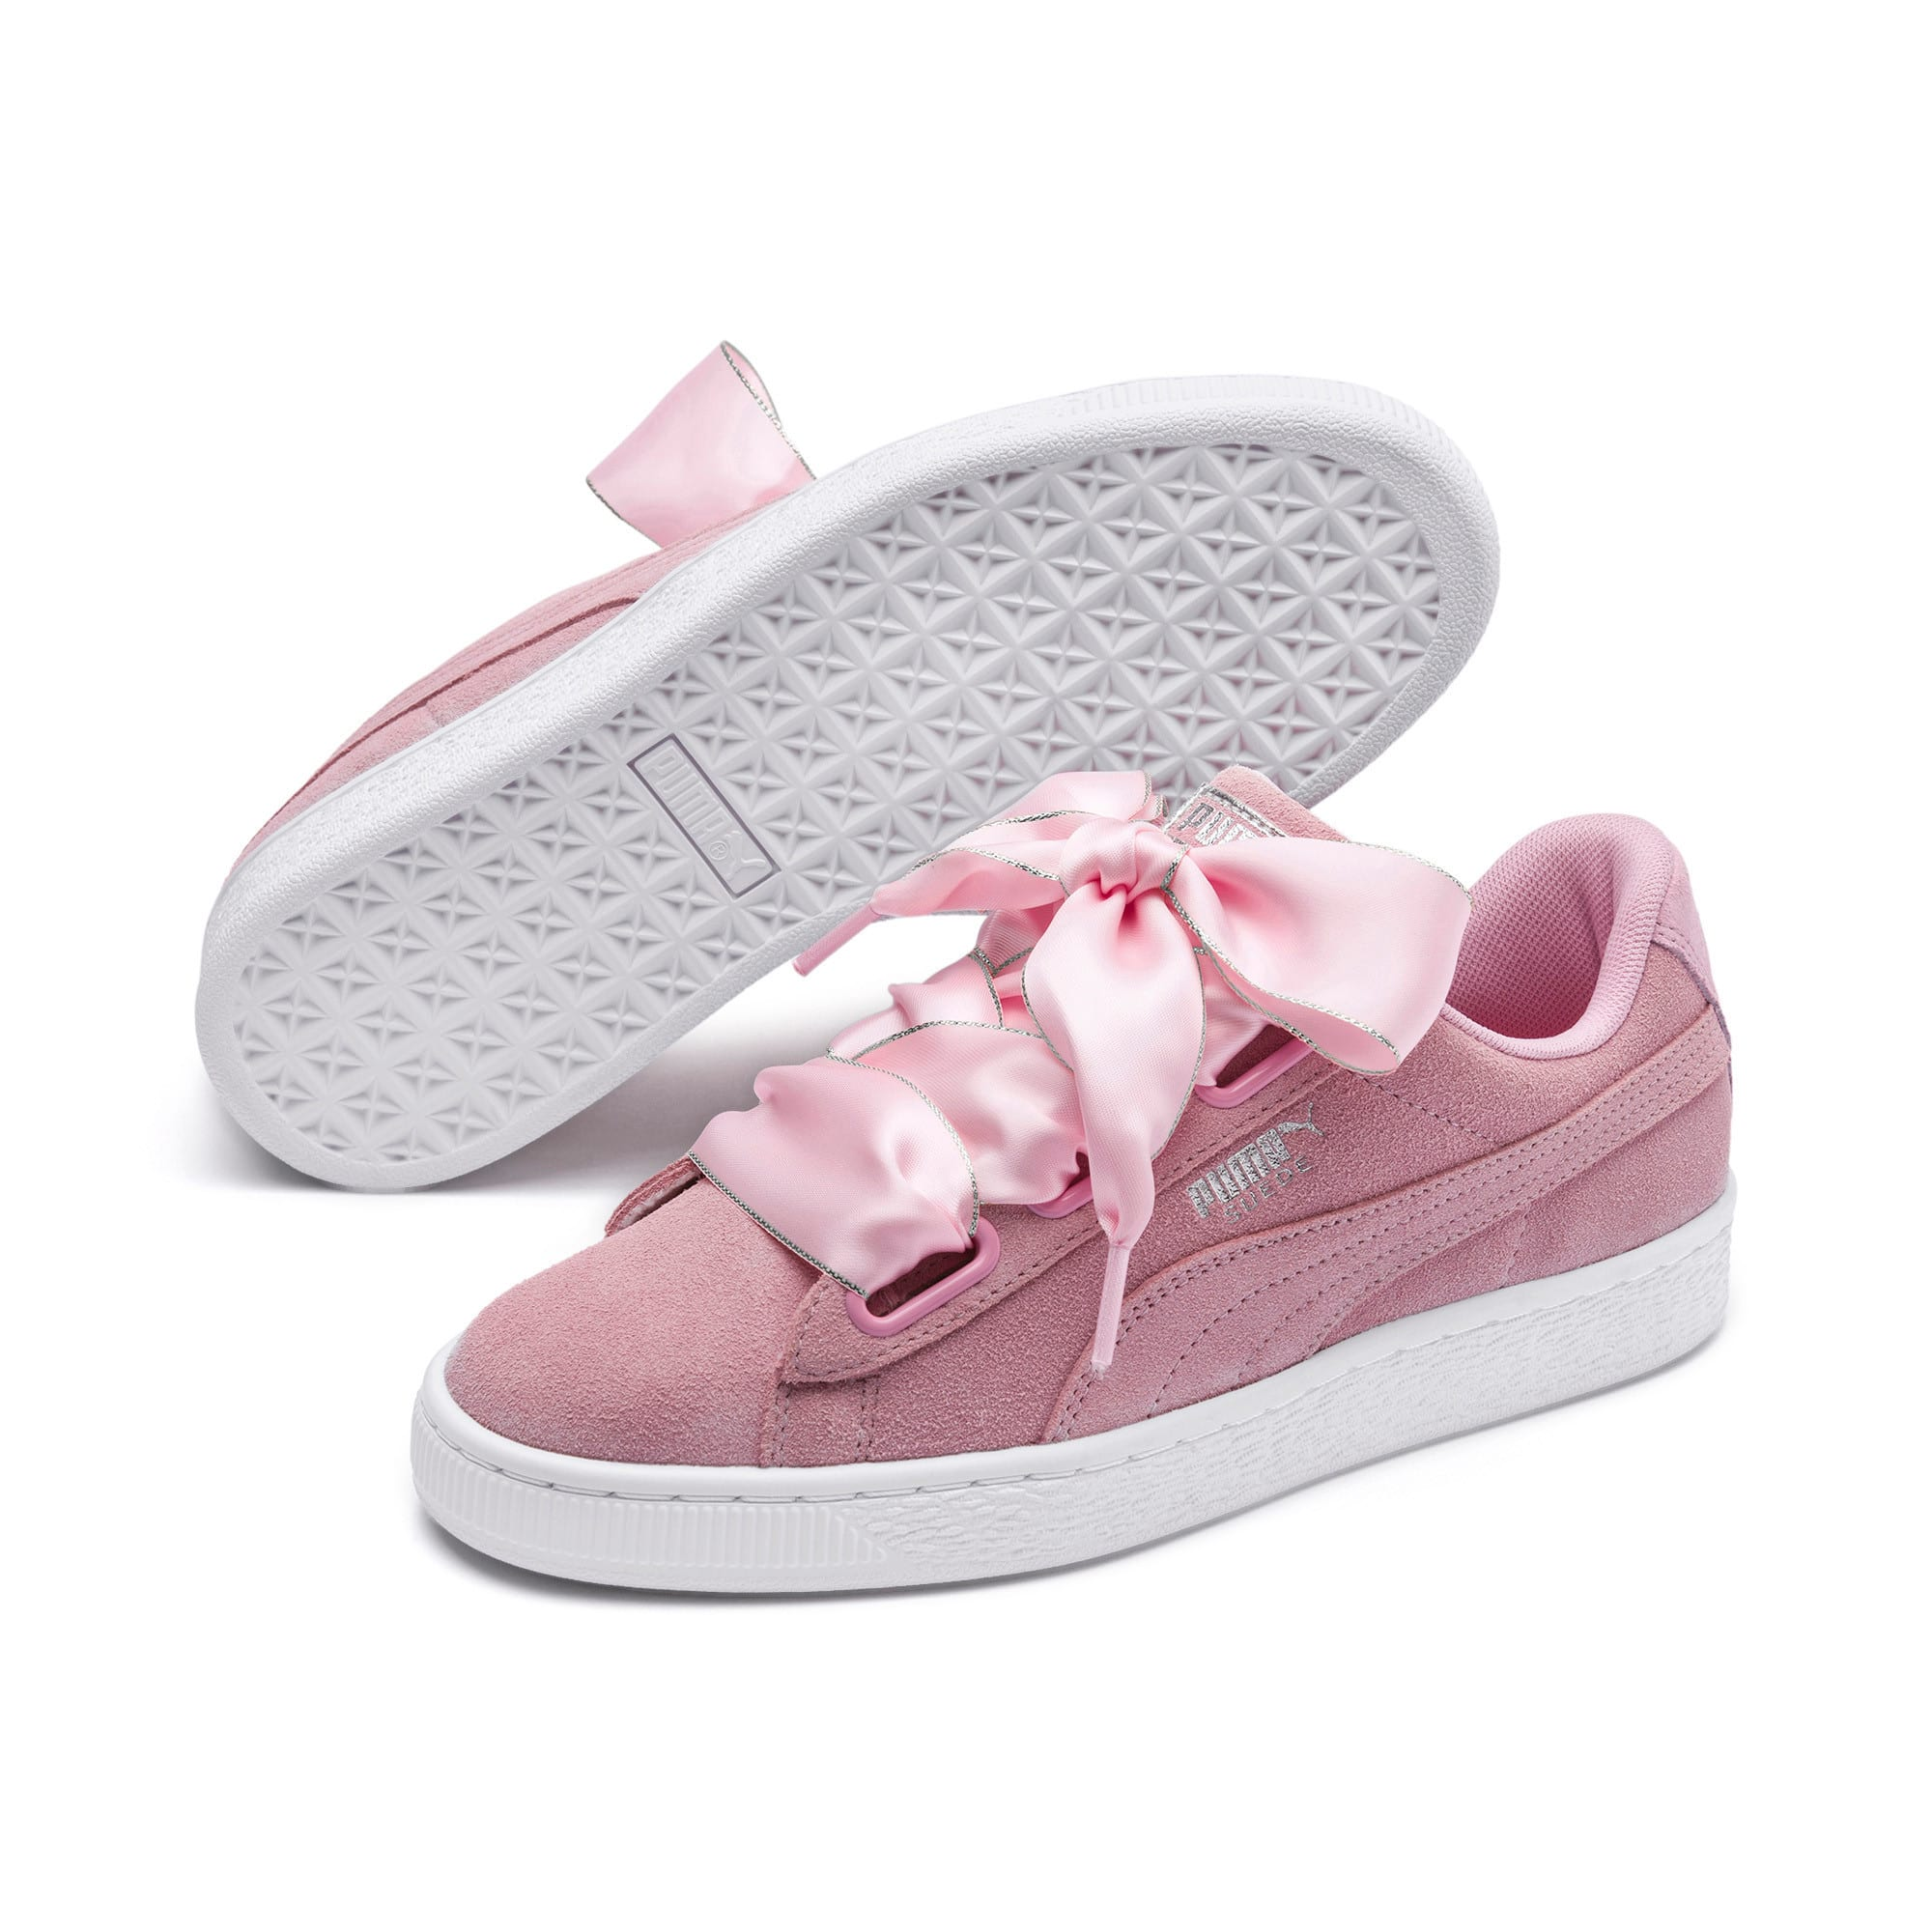 Thumbnail 3 of Suede Heart Galaxy Women's Shoes, Pale Pink-Puma Silver, medium-IND